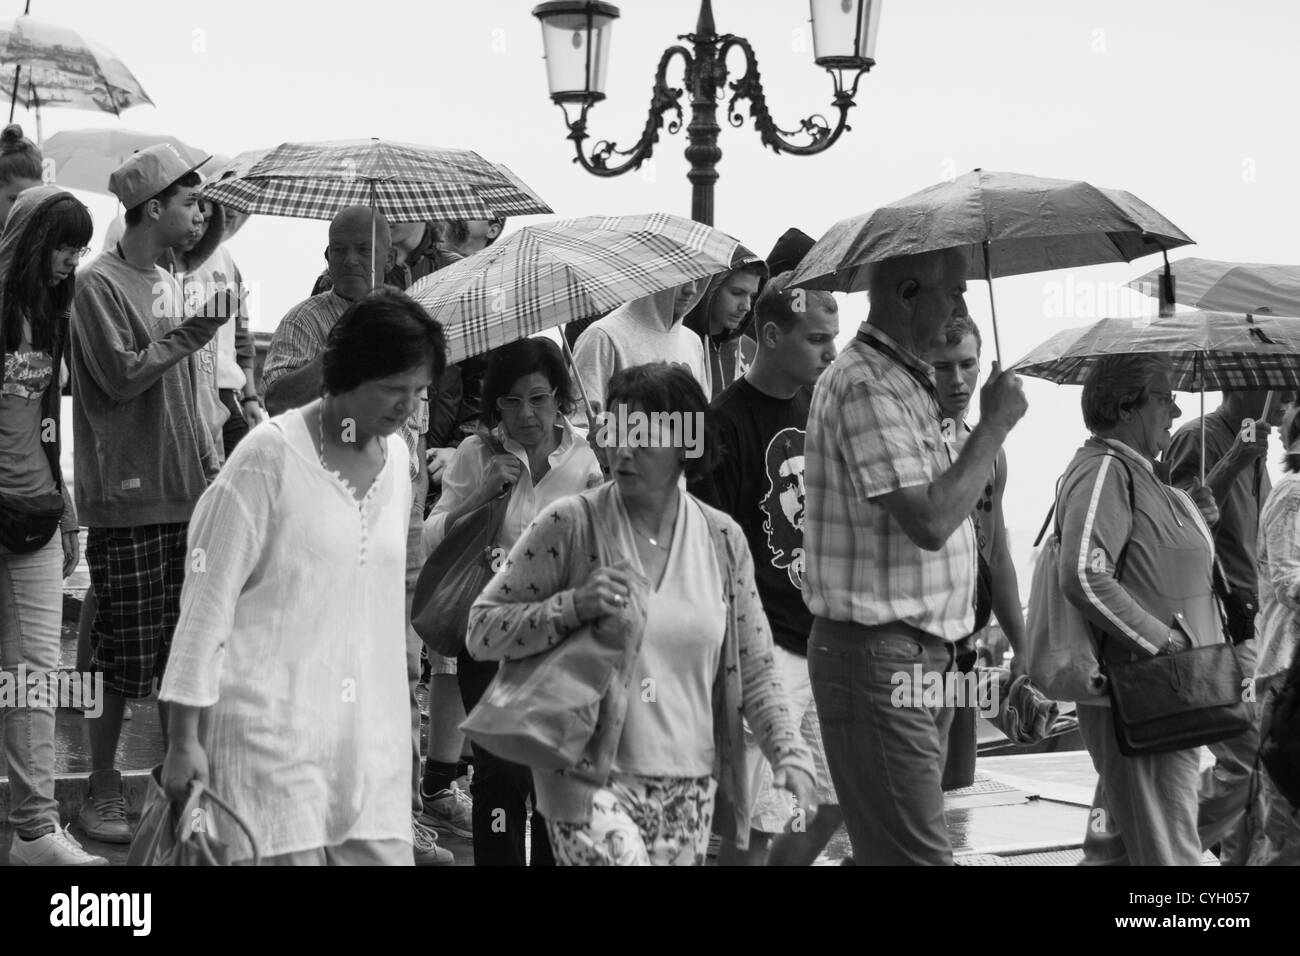 crowds of Tourists in the heavy rain. Venice waterfront.Italy - Stock Image